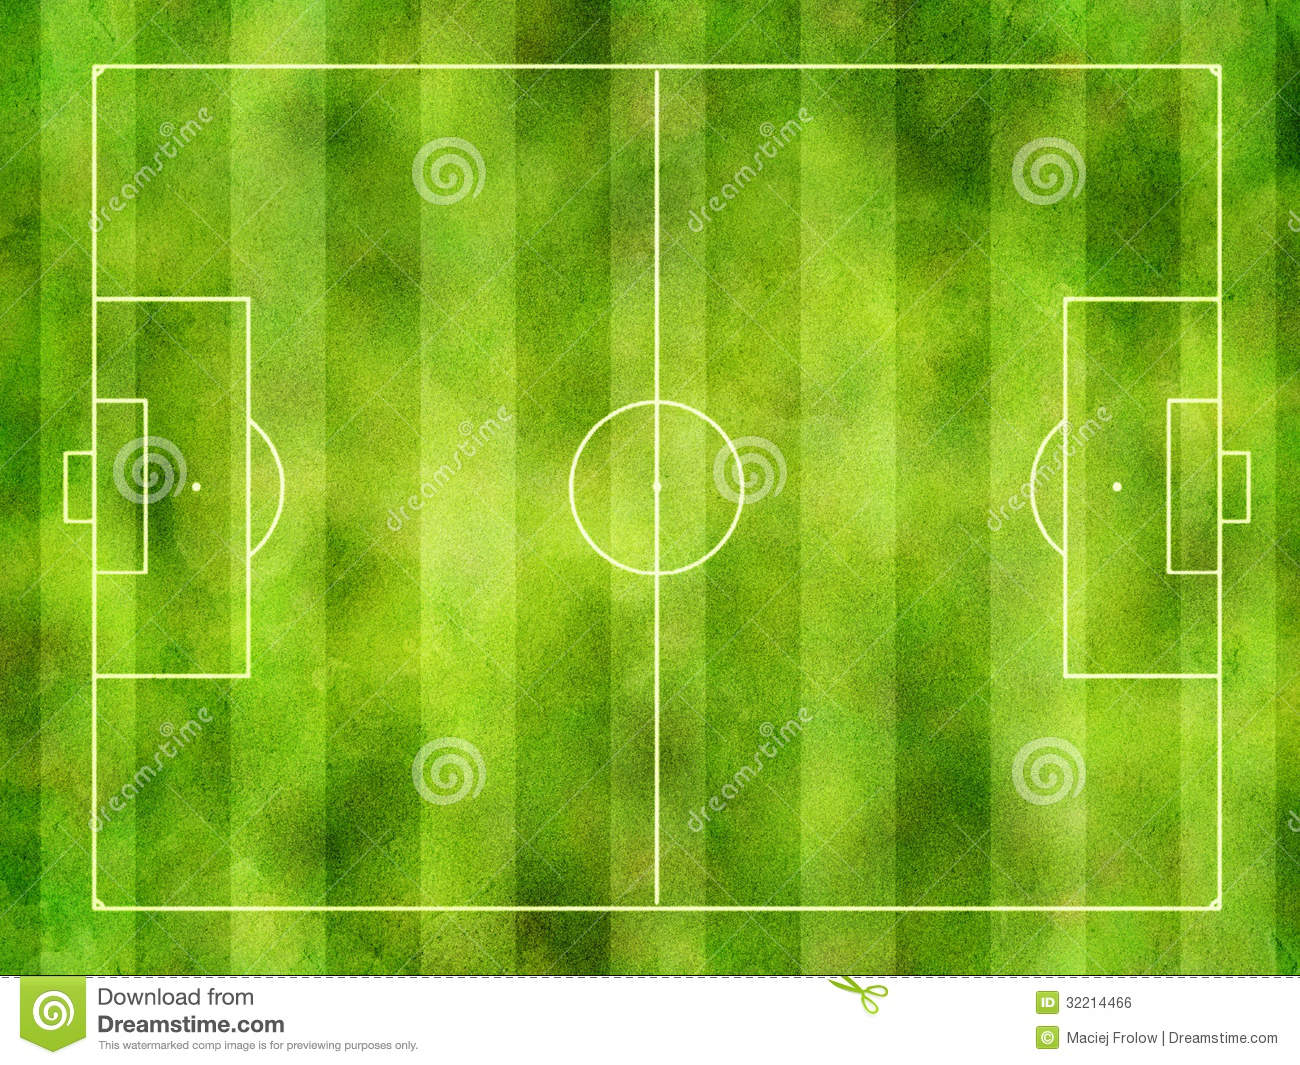 Soccer pitch stock photo. Image of textured, above, football - 32214466